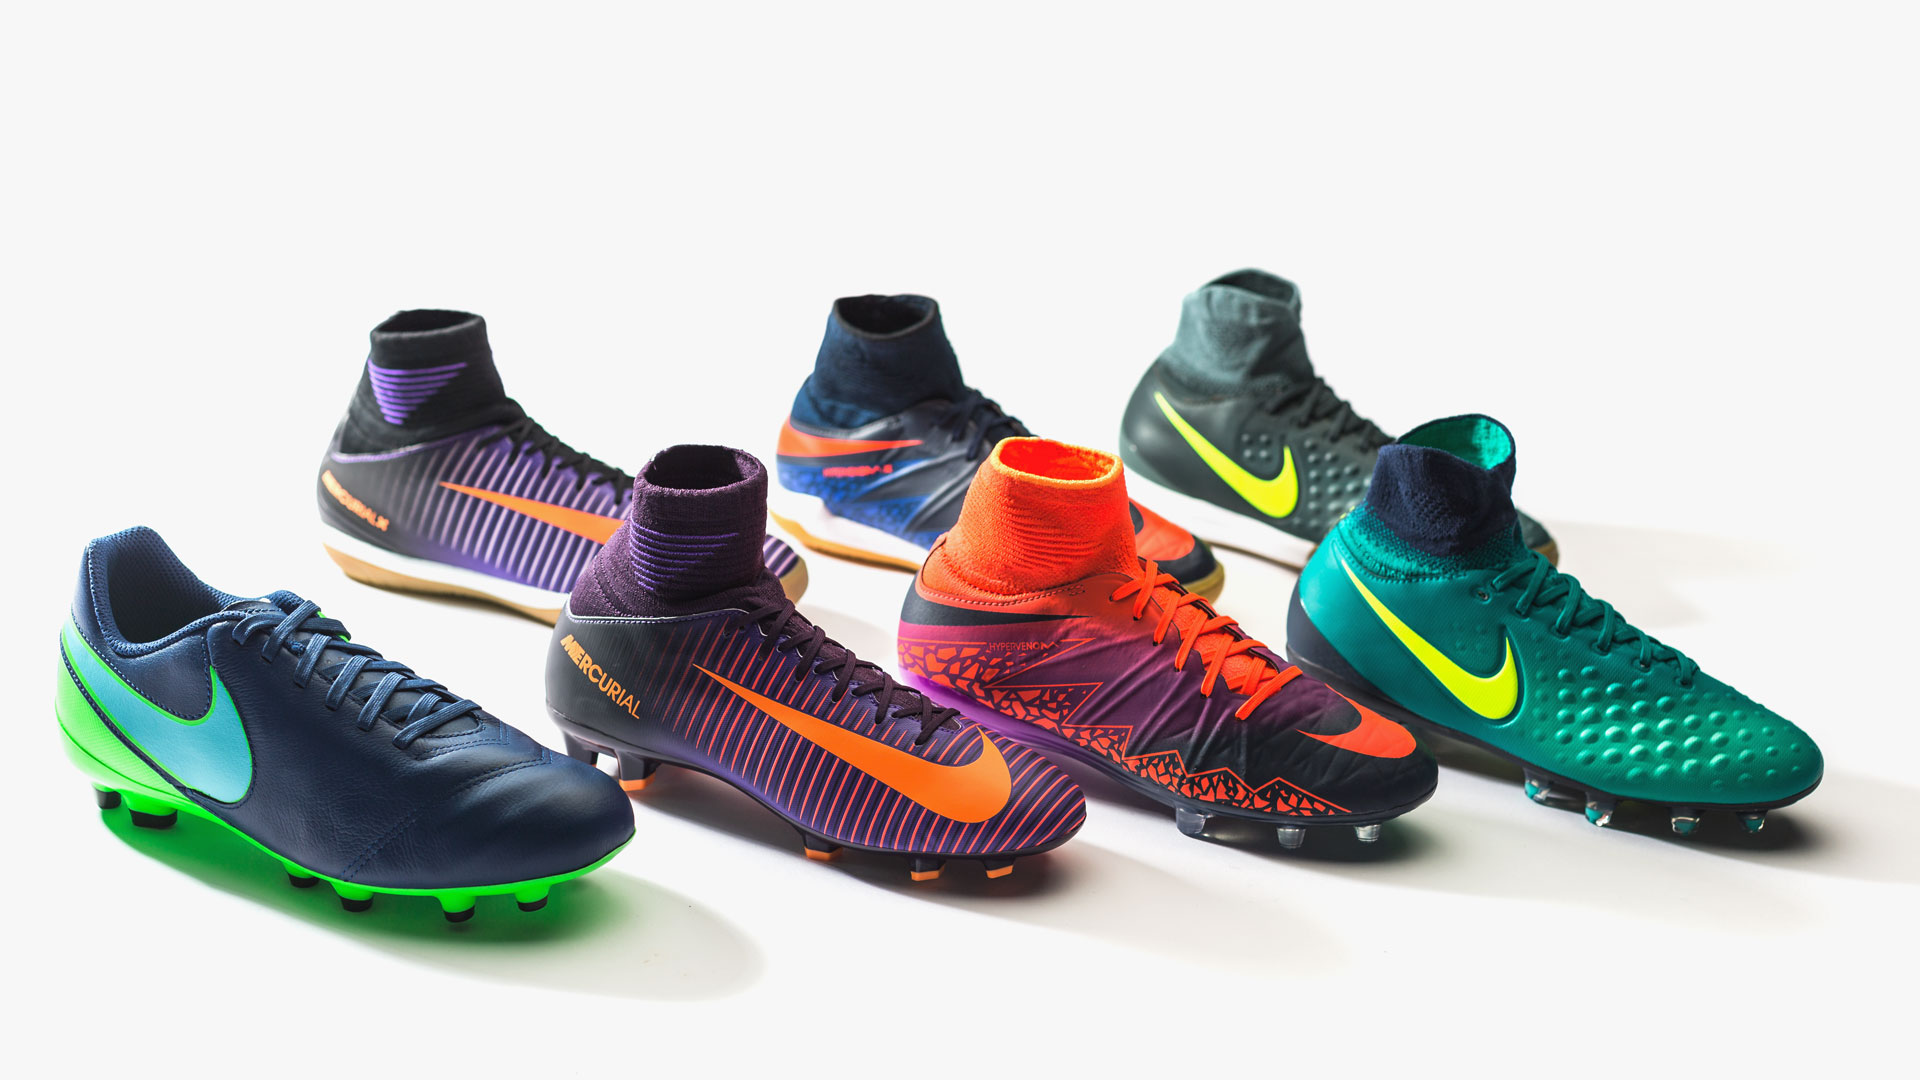 56c6fb780a92 Best Nike football boots in kids sizes | Floodlights Pack